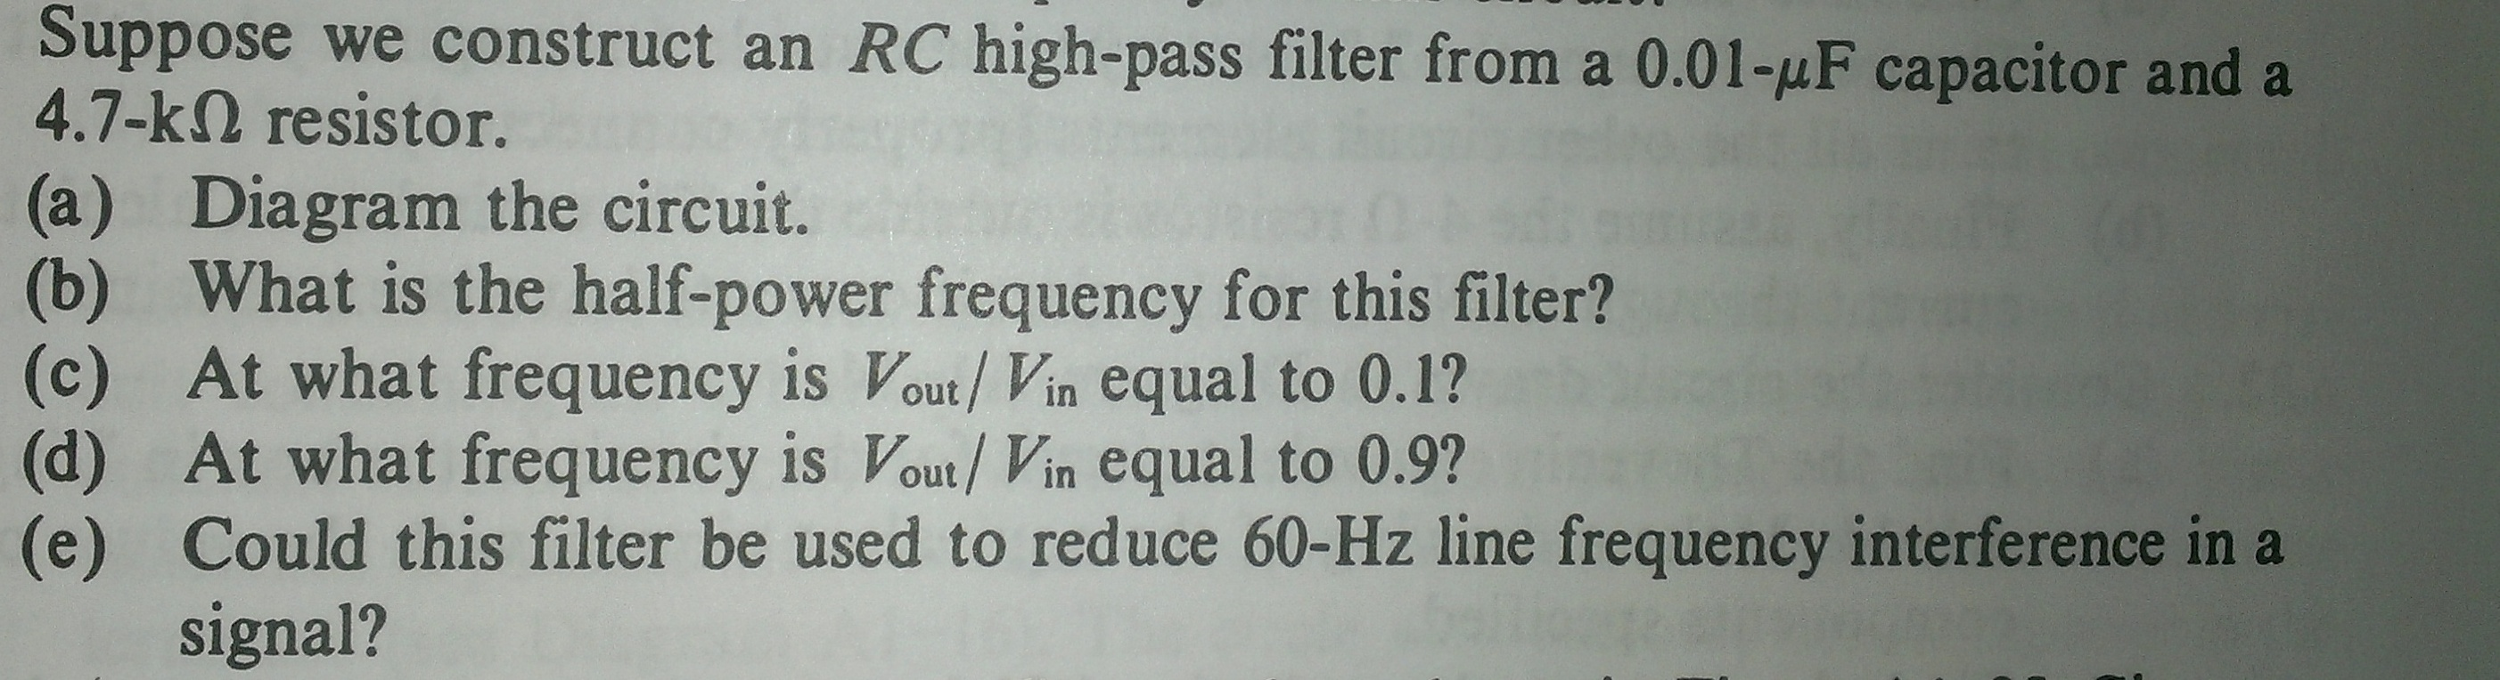 Suppose we construct an RC high-pass filter from a